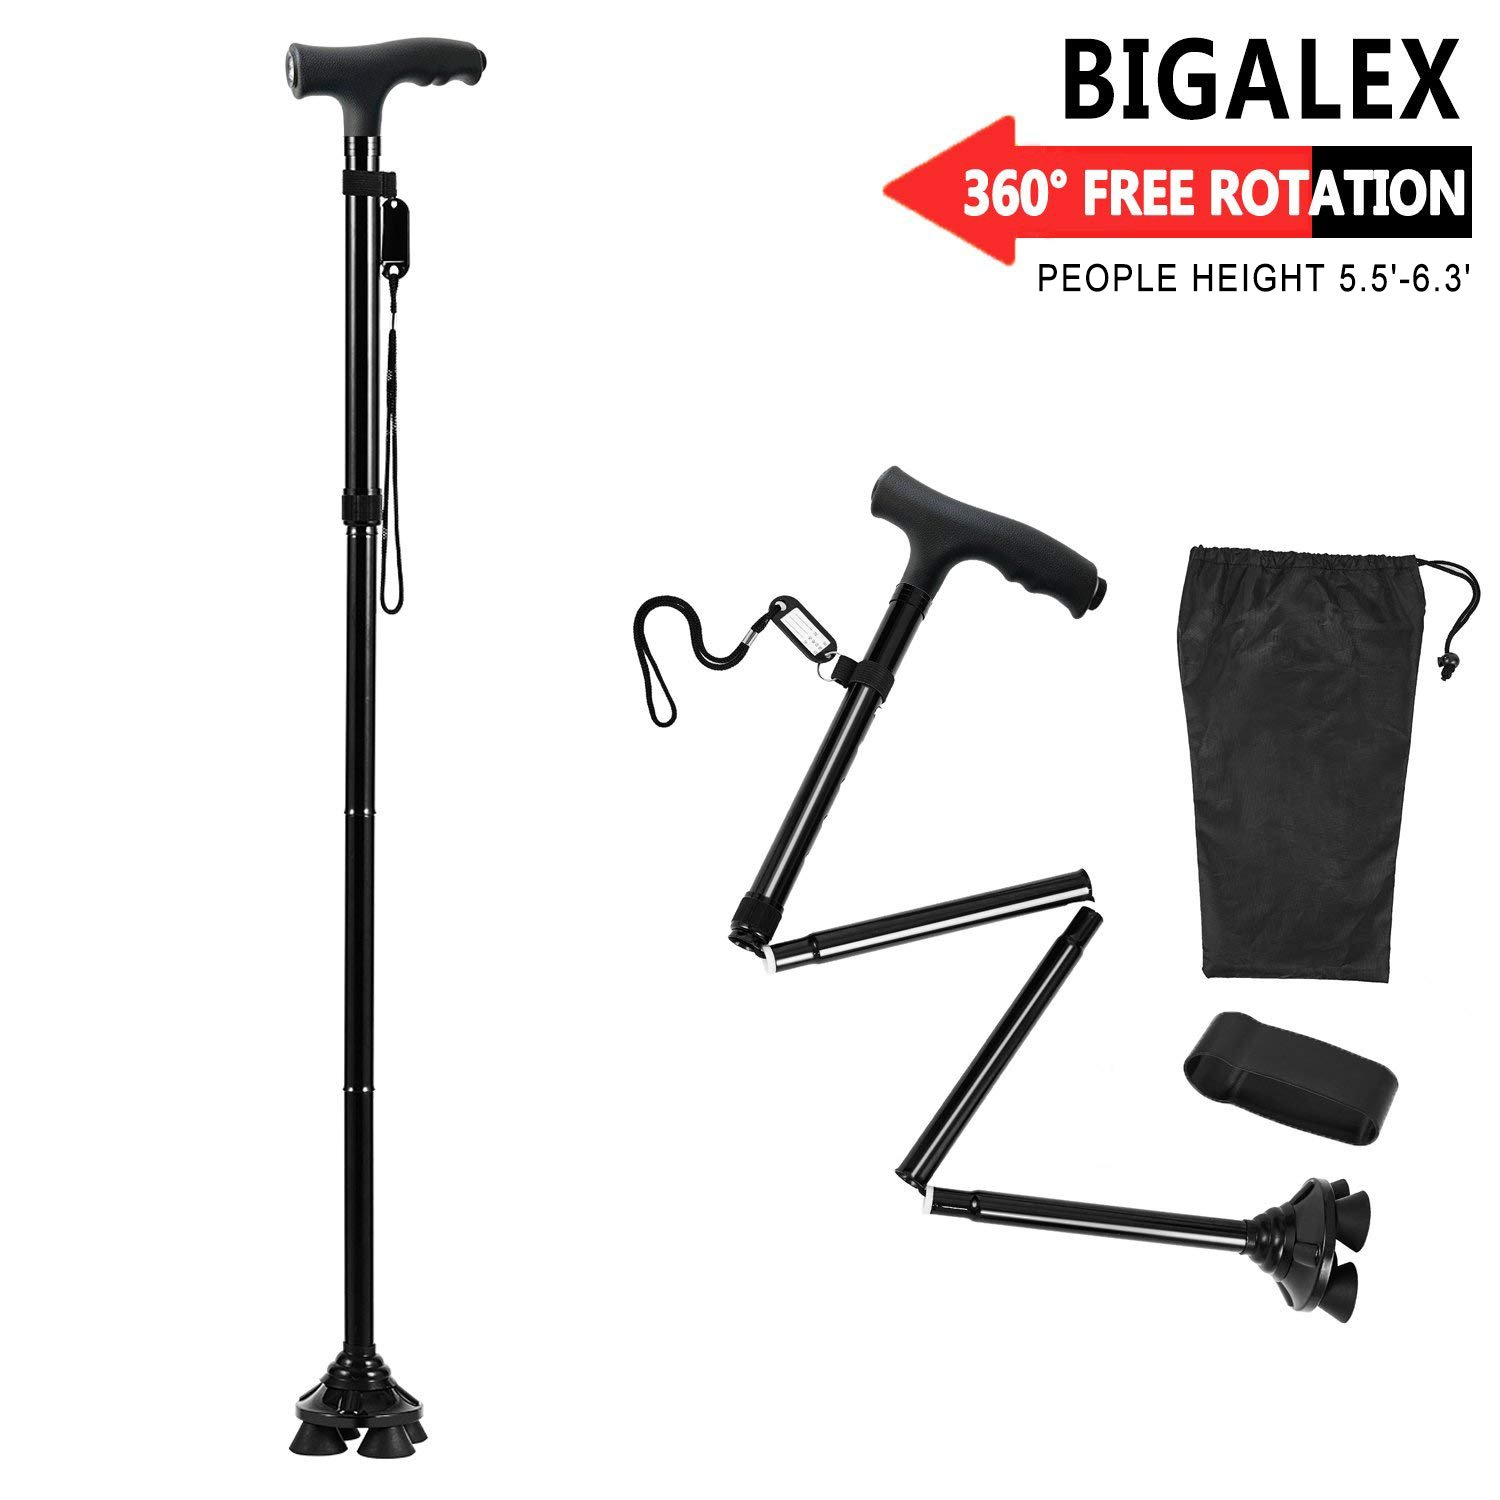 BigAlex Folding Walking Cane with LED Light,Adjustable & Portable Walking Stick, Lightweight,Collapsible with Carrying Bag for Men/Woman(Large) by BigAlex (Image #1)